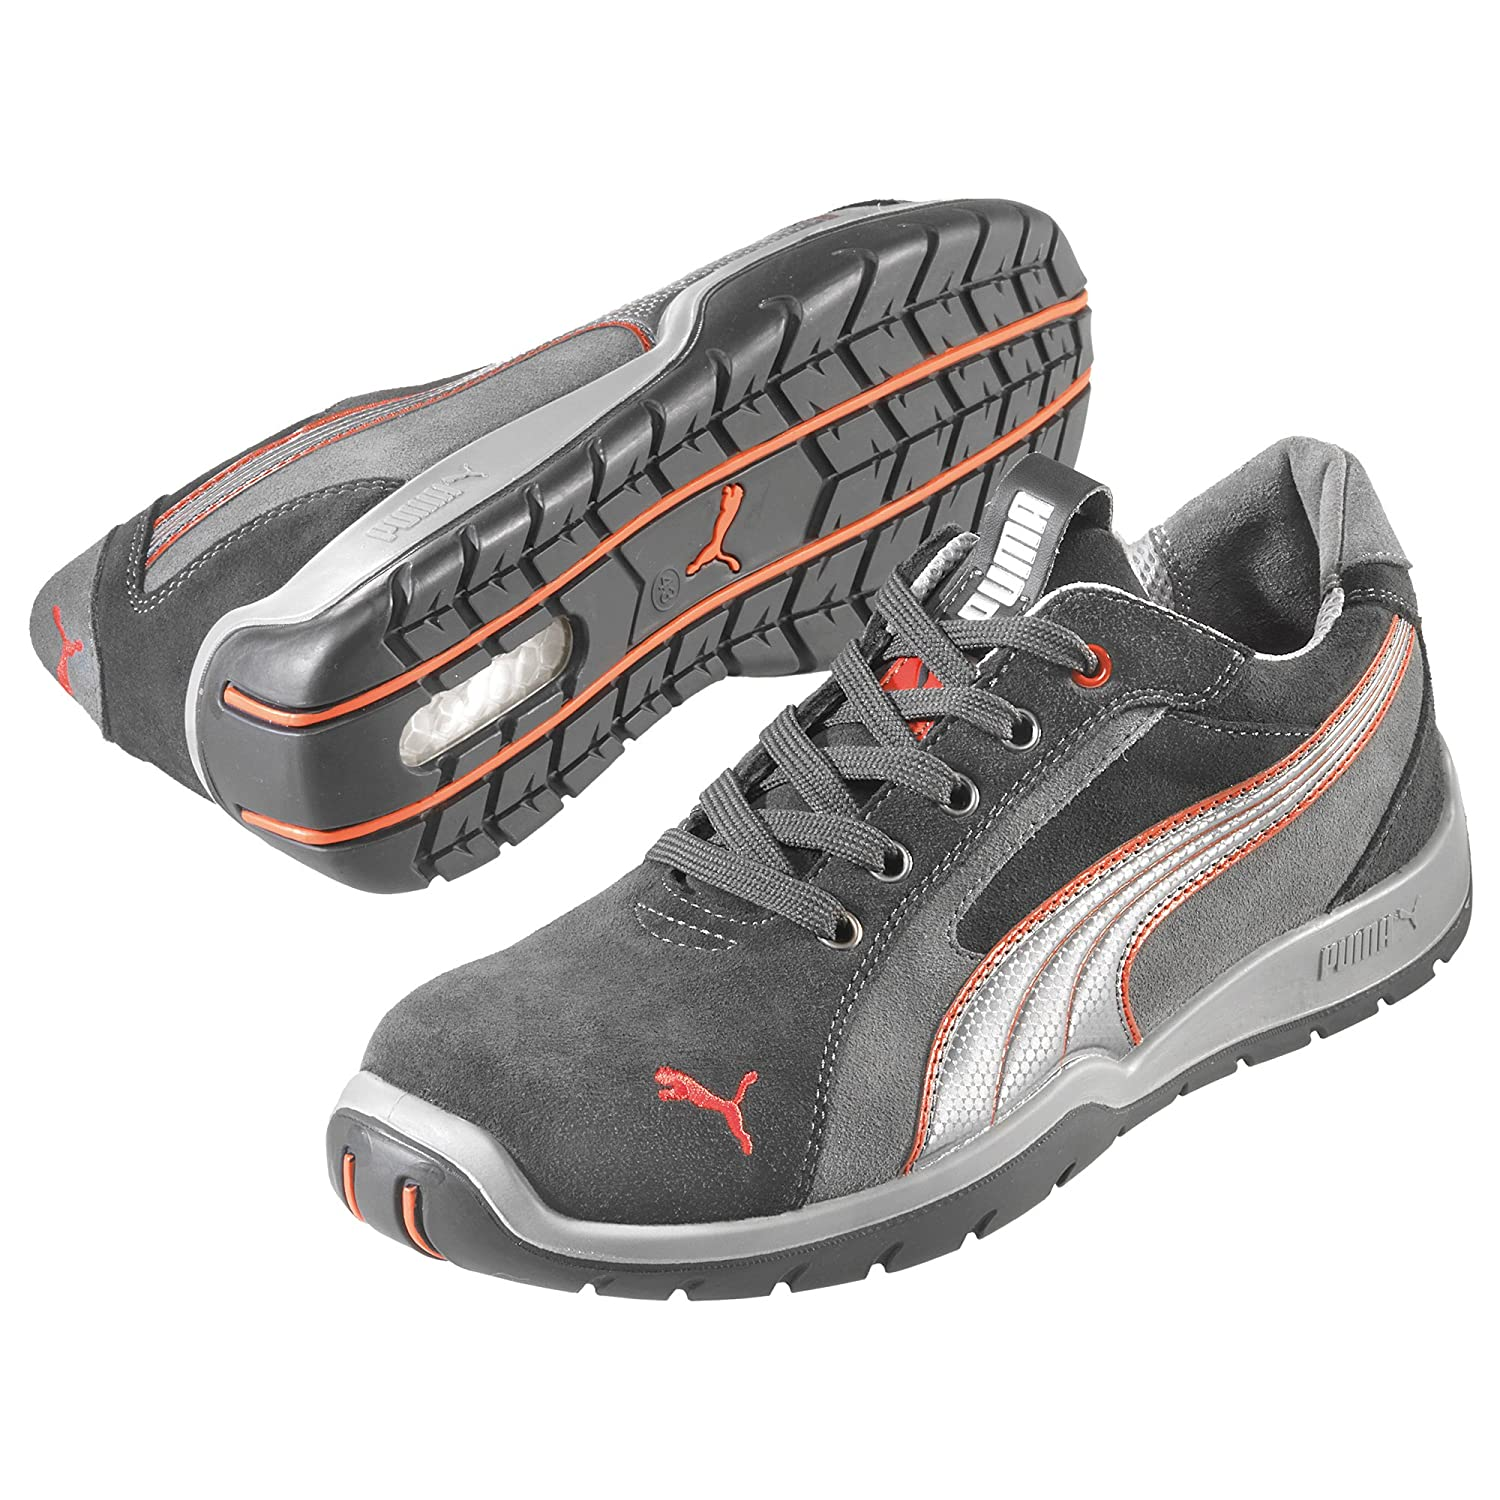 Puma 642680 800 39 Safety Shoes